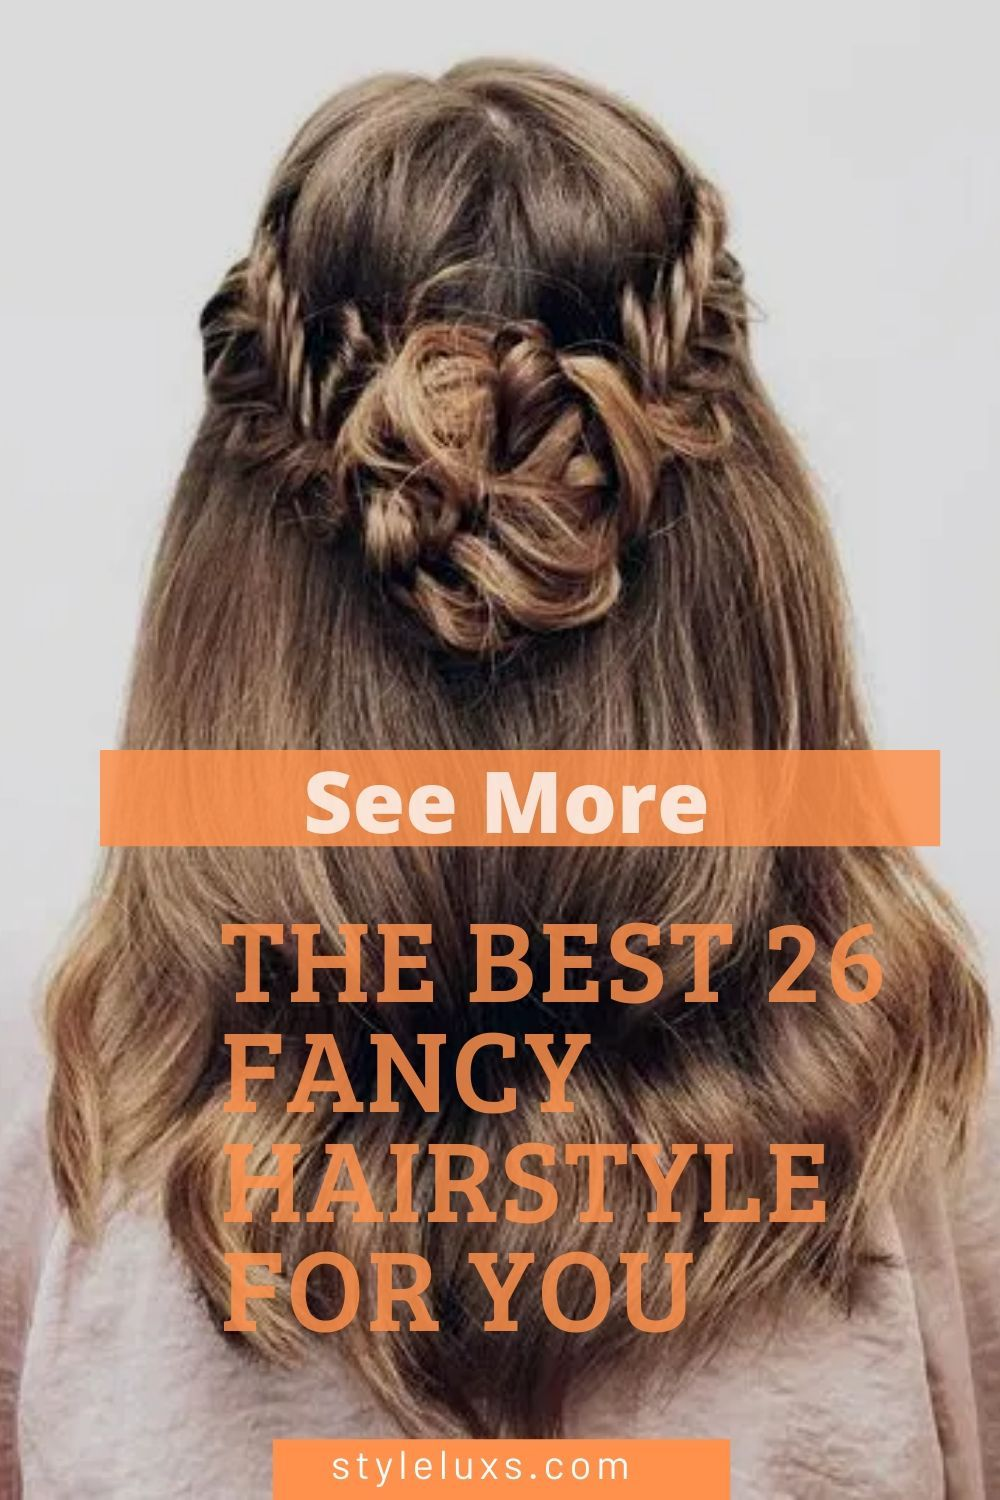 The Best 26 Fancy Hairstyle for you